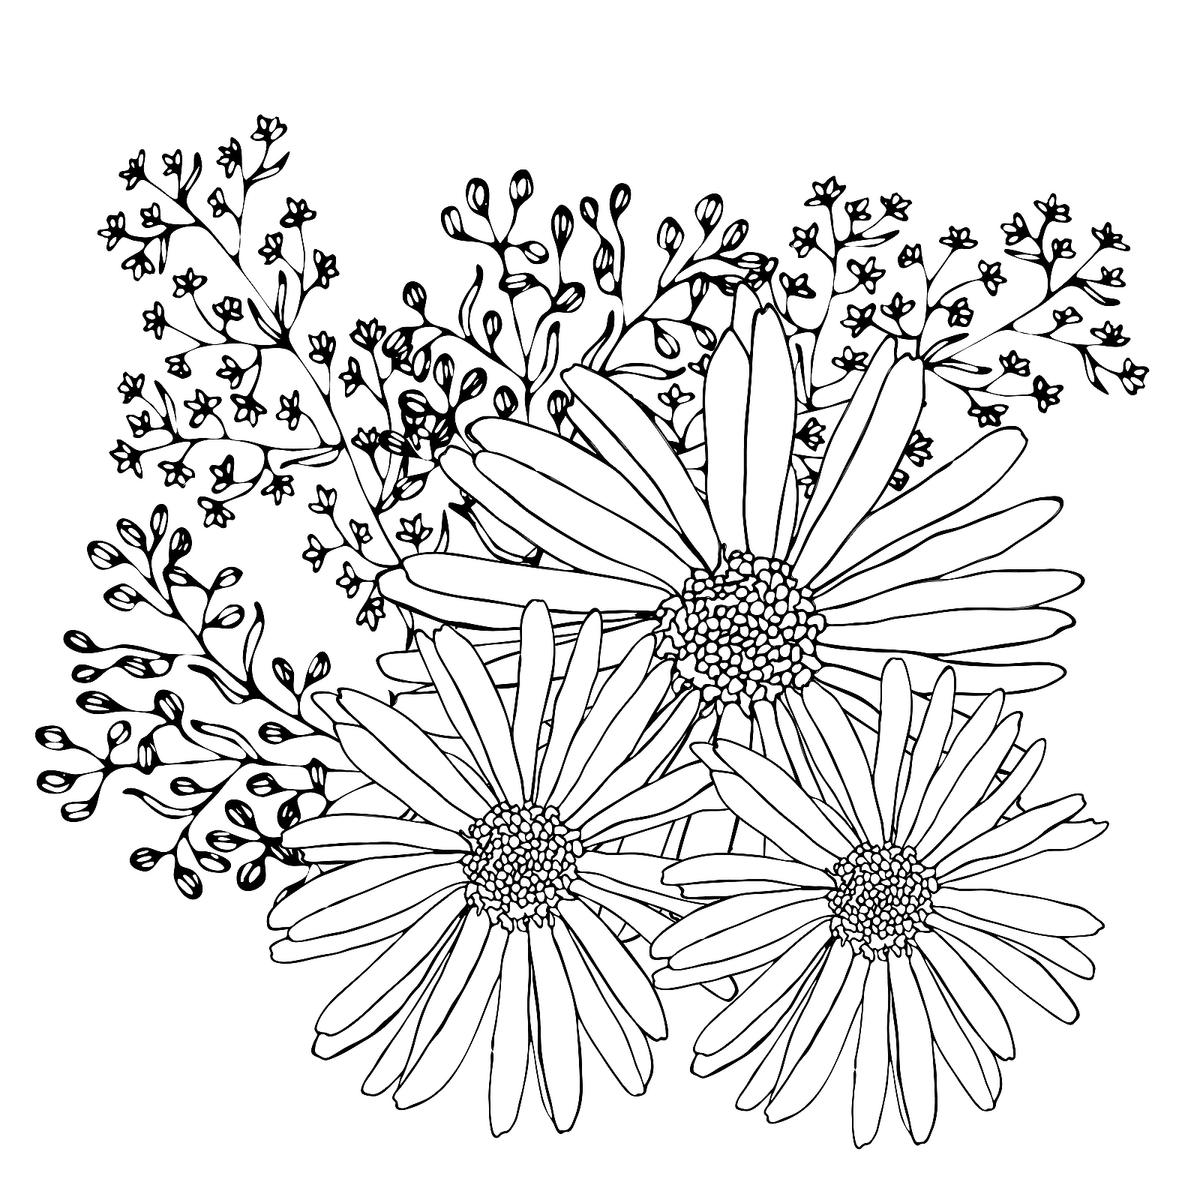 Flowers Coloring Pages 10 Free Fun Printable Coloring Pages Of Flowers Printables 30seconds Mom